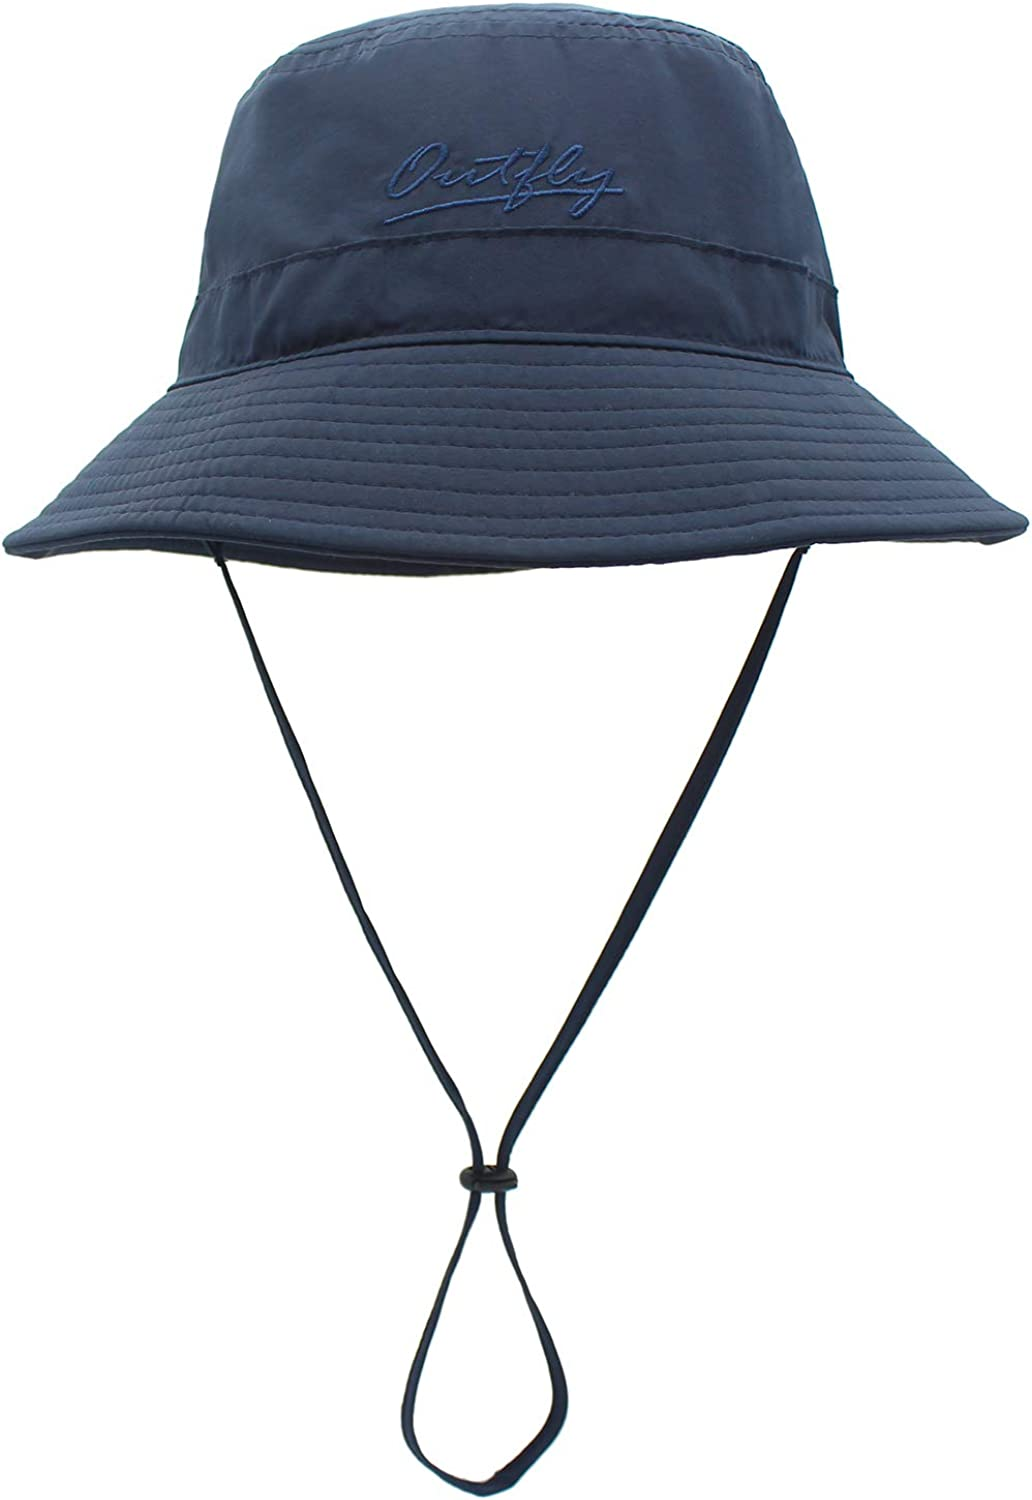 Home Prefer Womens Bucket Sun Hat UPF 50+ Light Weight Sun Protection Caps